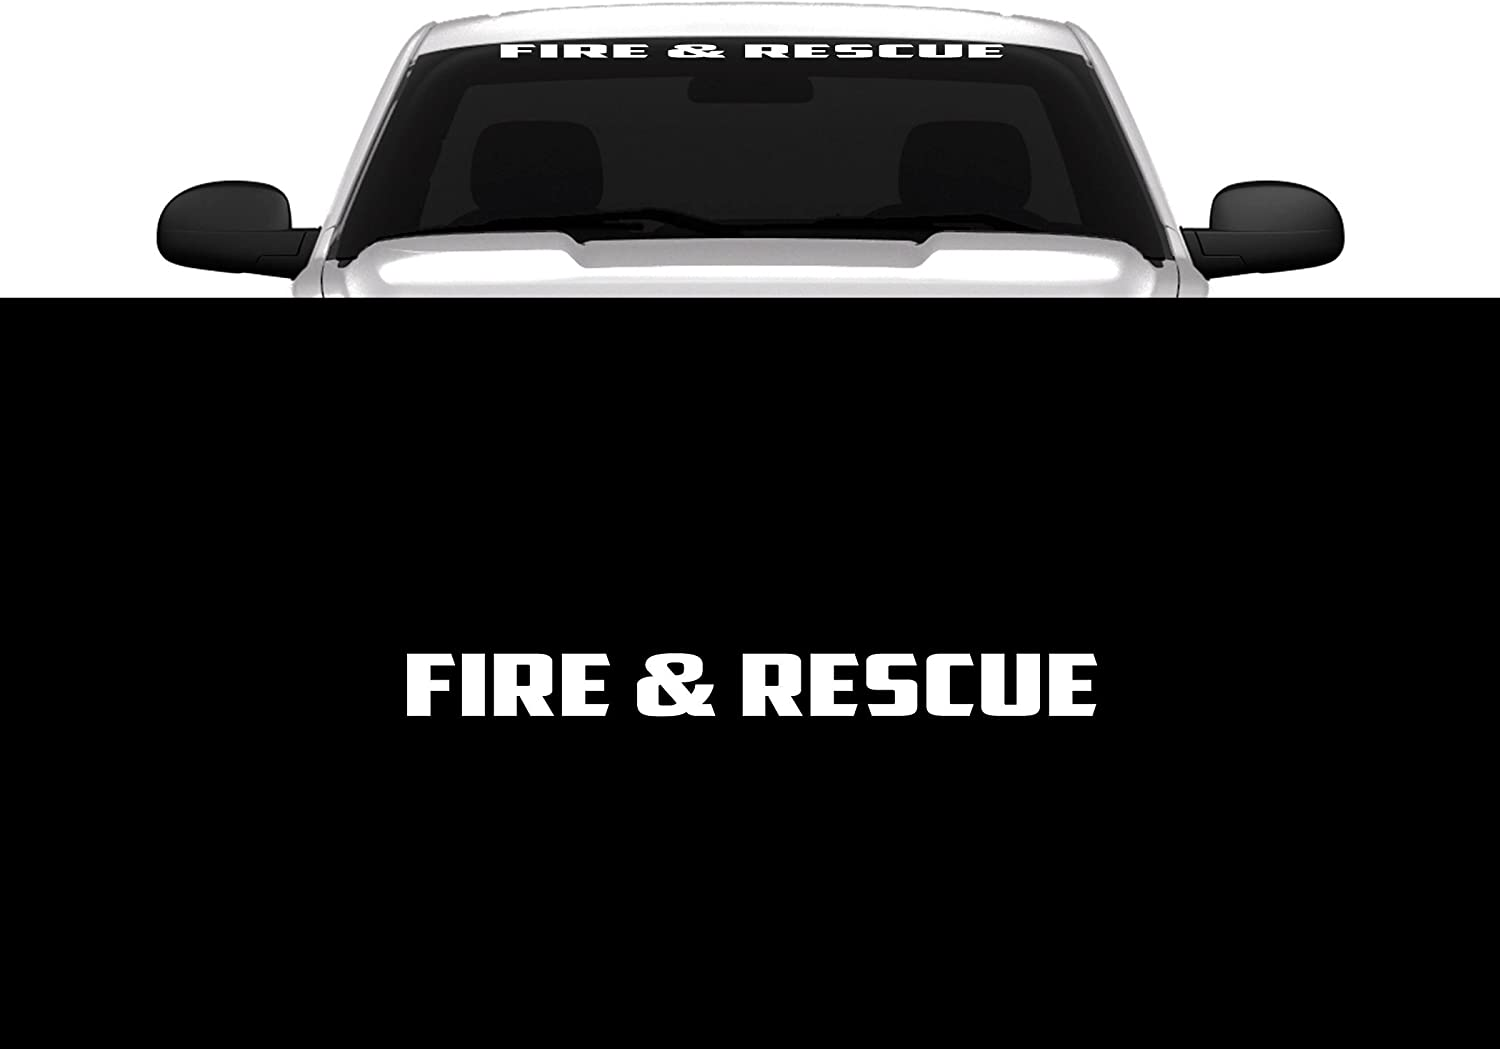 Limited Edition Small Large Custom Car Window Bumper Stickers Decals ref:3